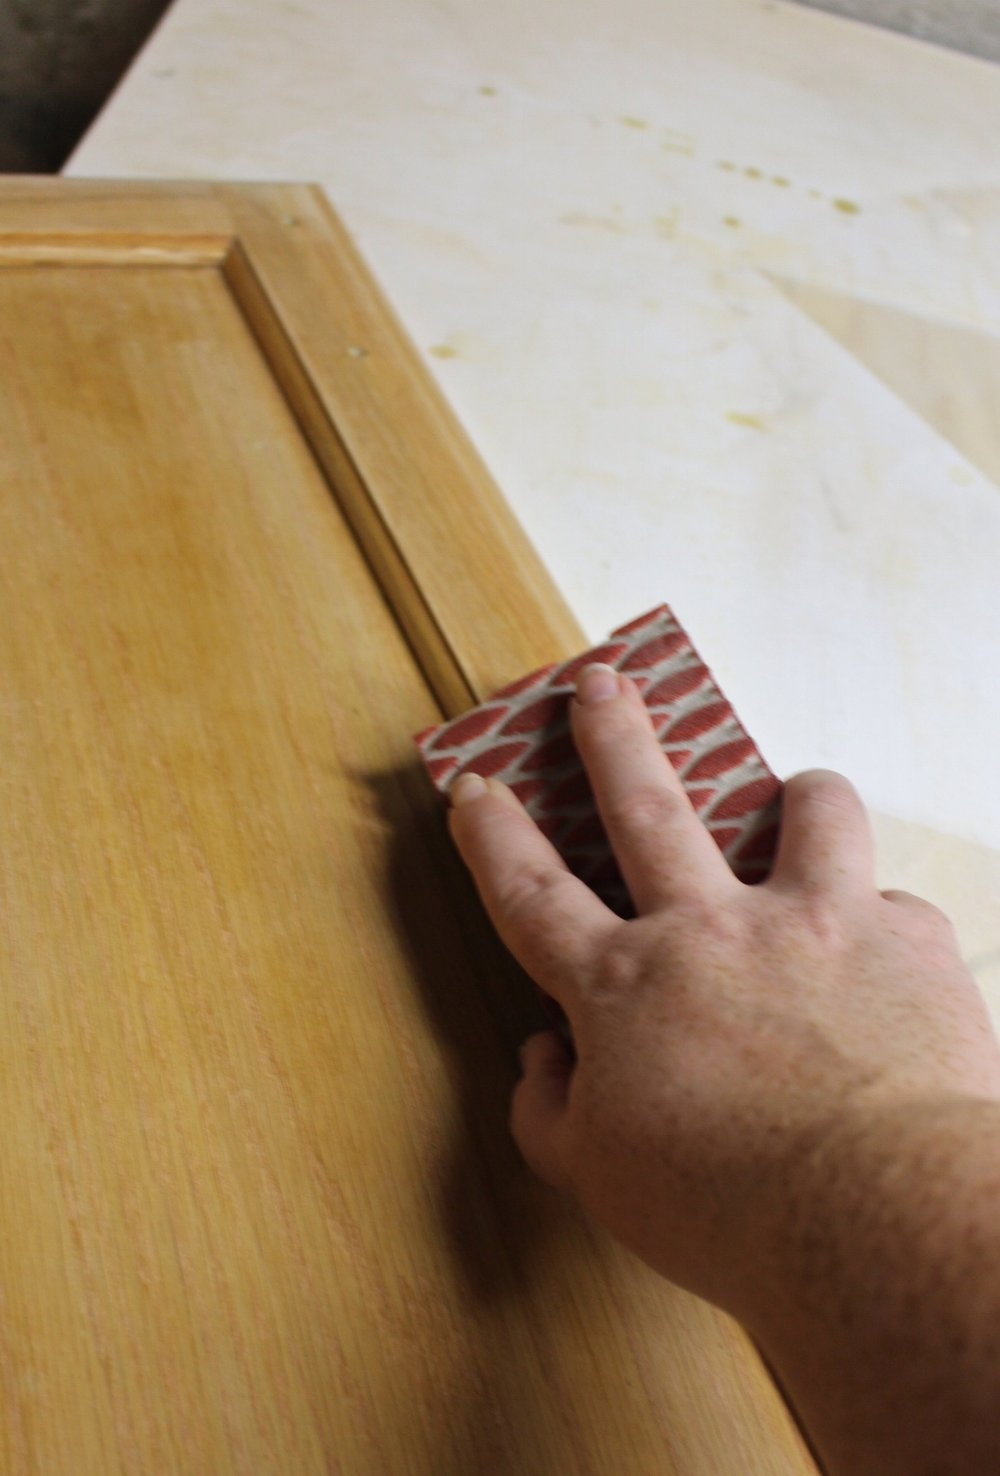 sanding curved edges by hand